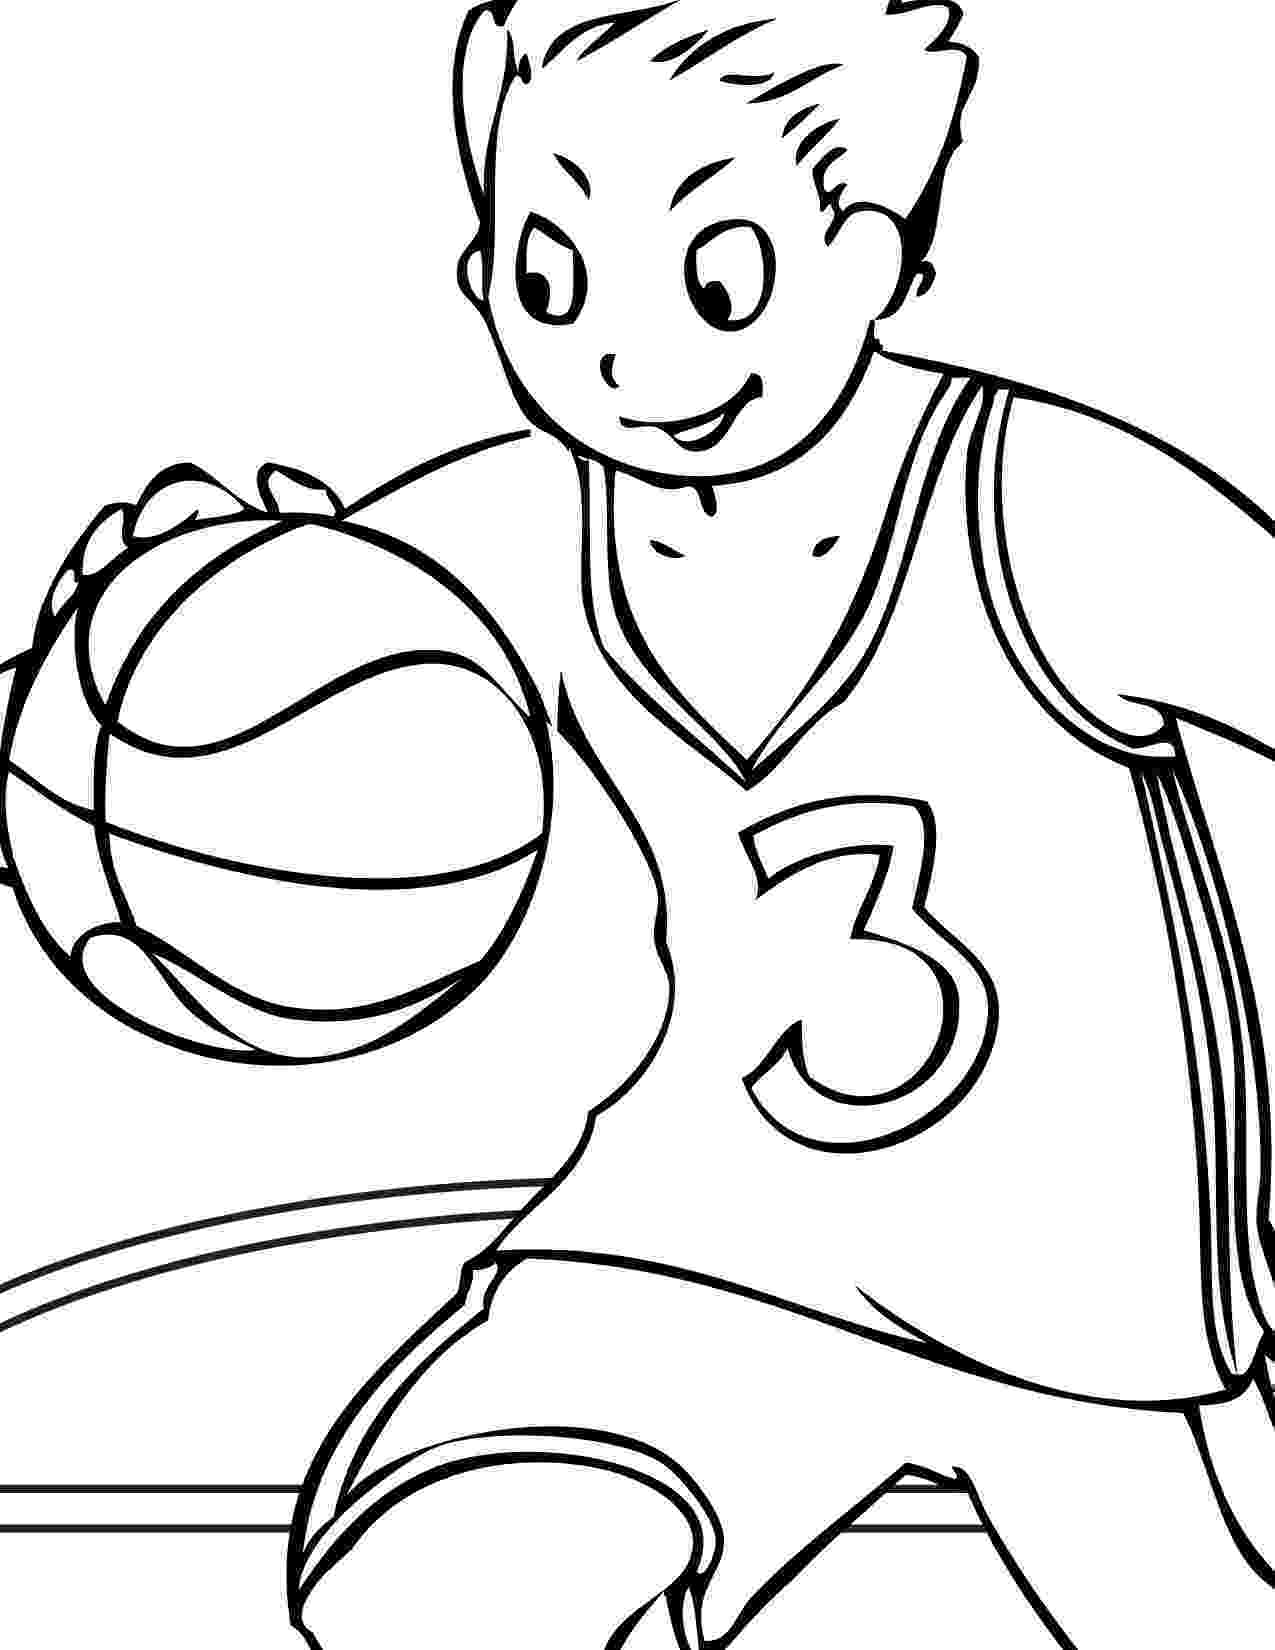 free sports coloring sheets car coloring pages free printable coloring pages with free sports coloring sheets